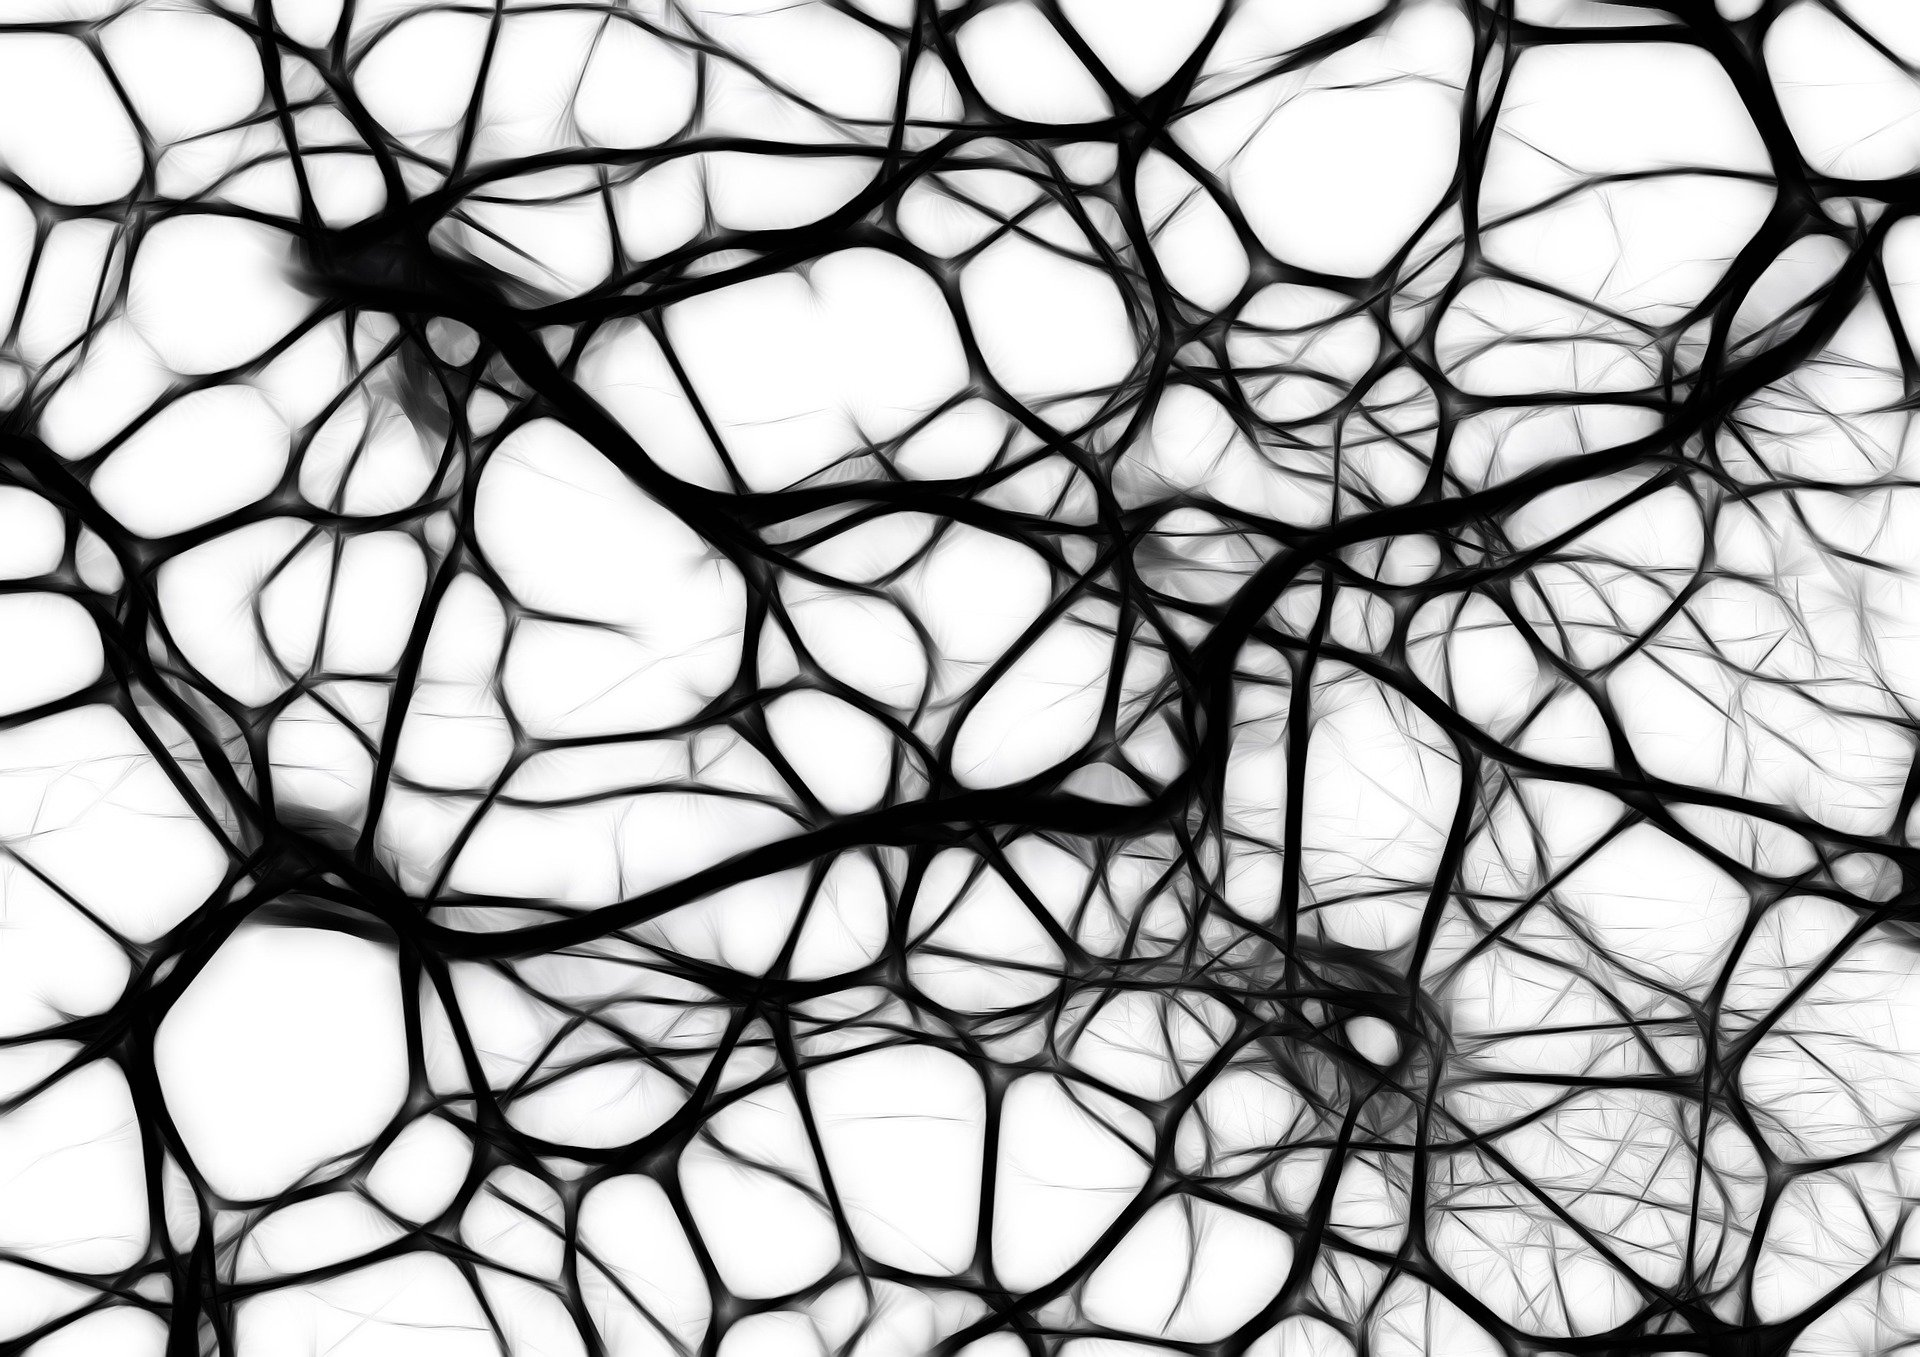 the dimension of a space can be inferred from the abstract network